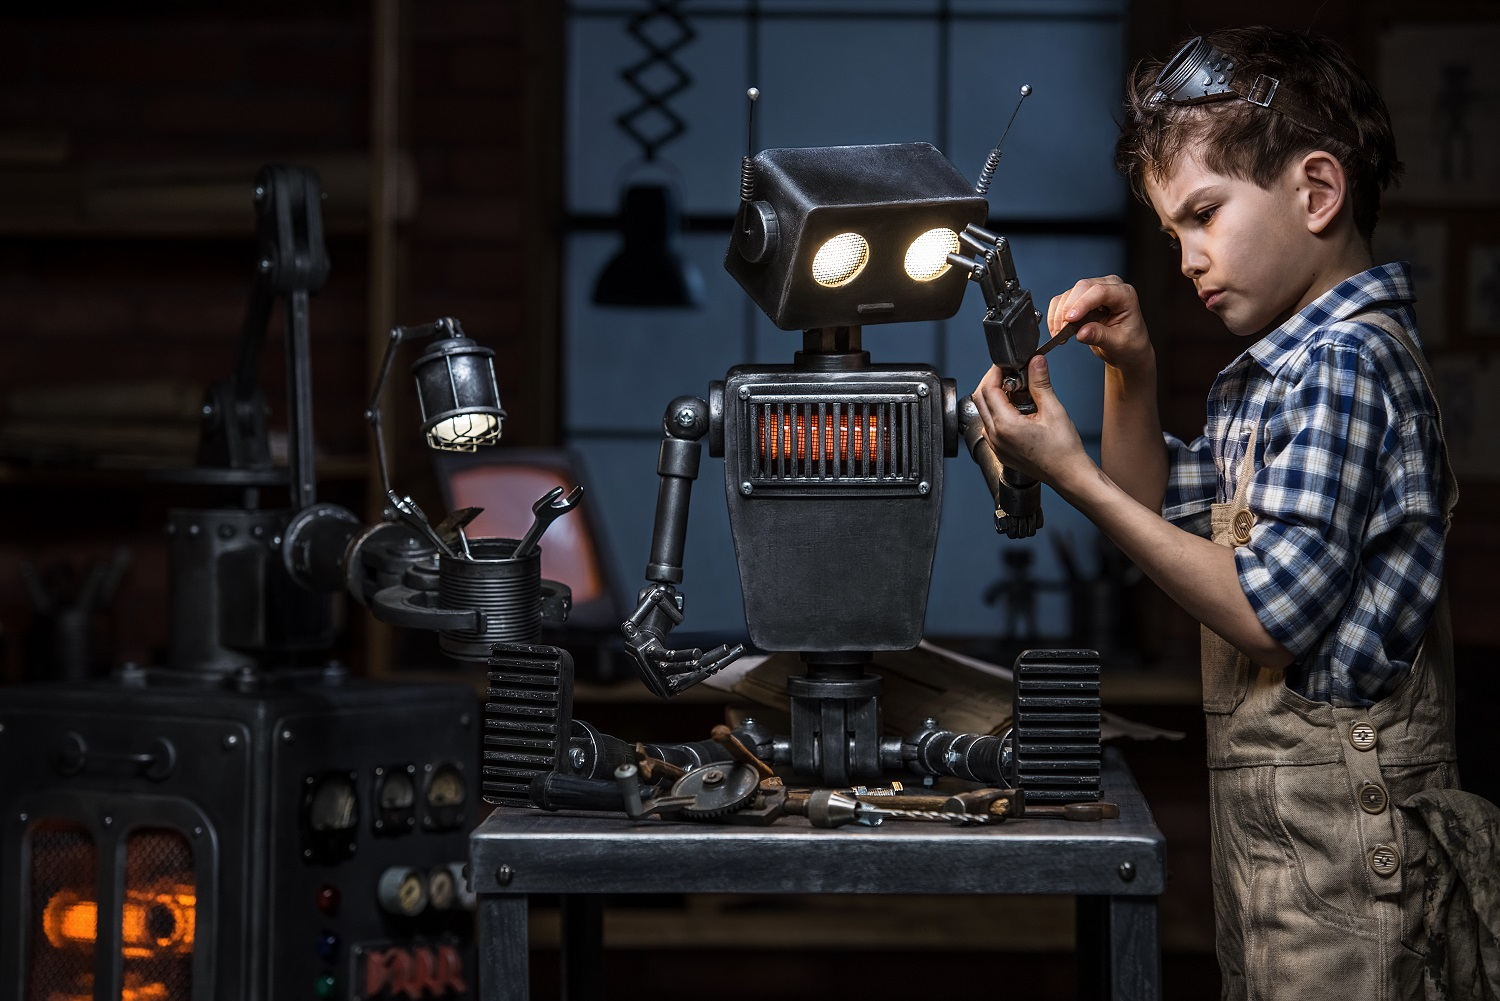 Data Science and Machine Learning - What to Learn in 2021